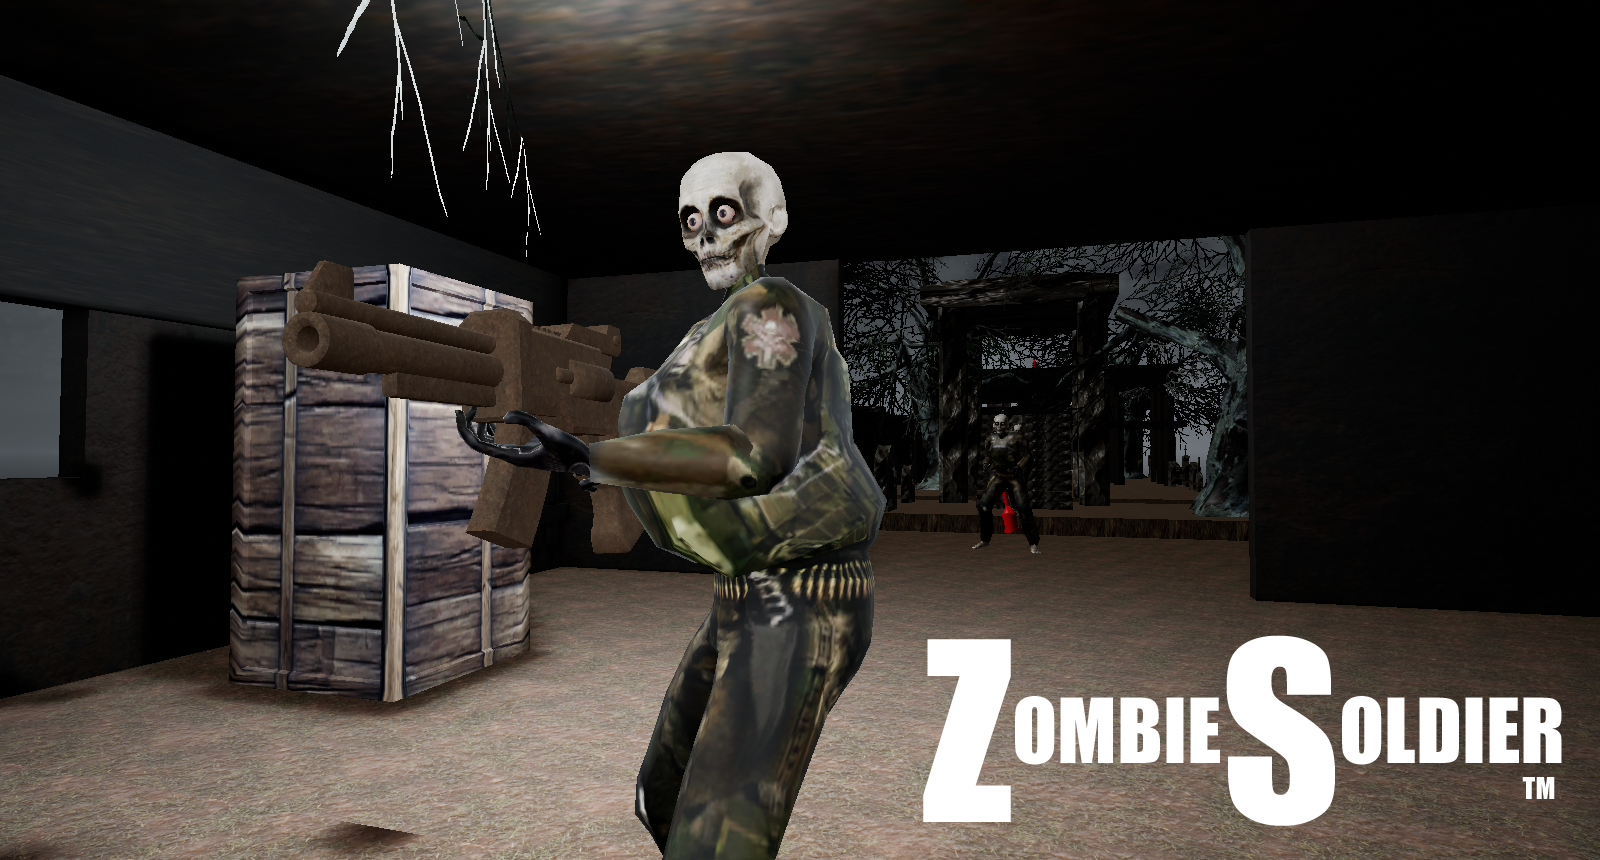 zombiesoldier_with_logo_w7